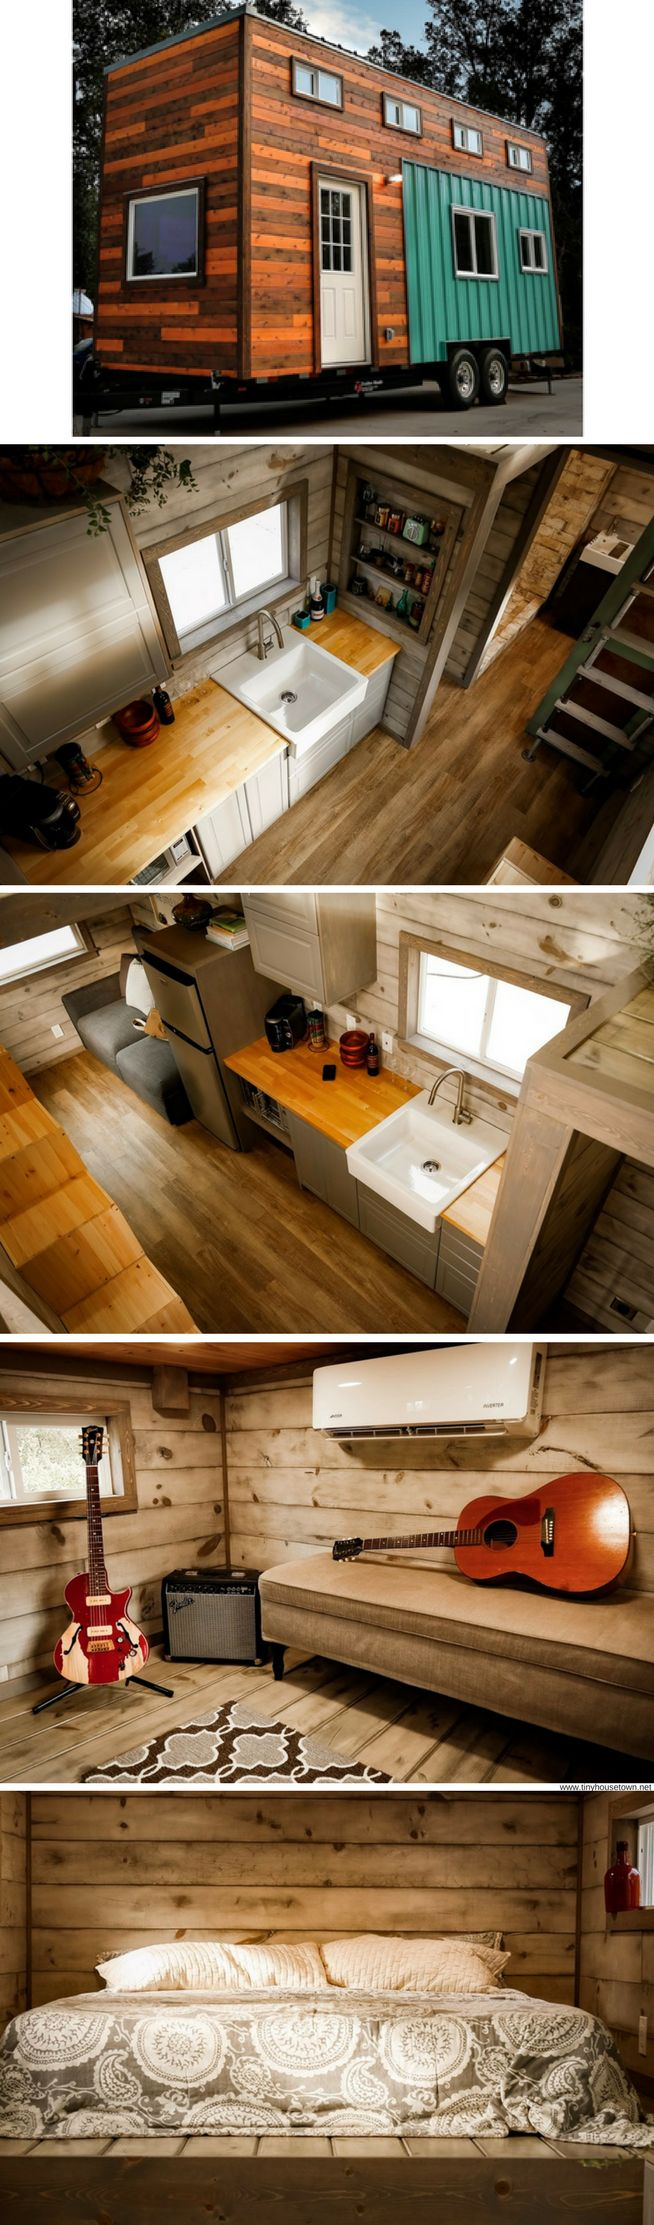 Habeo Tiny House (285 Sq Ft)